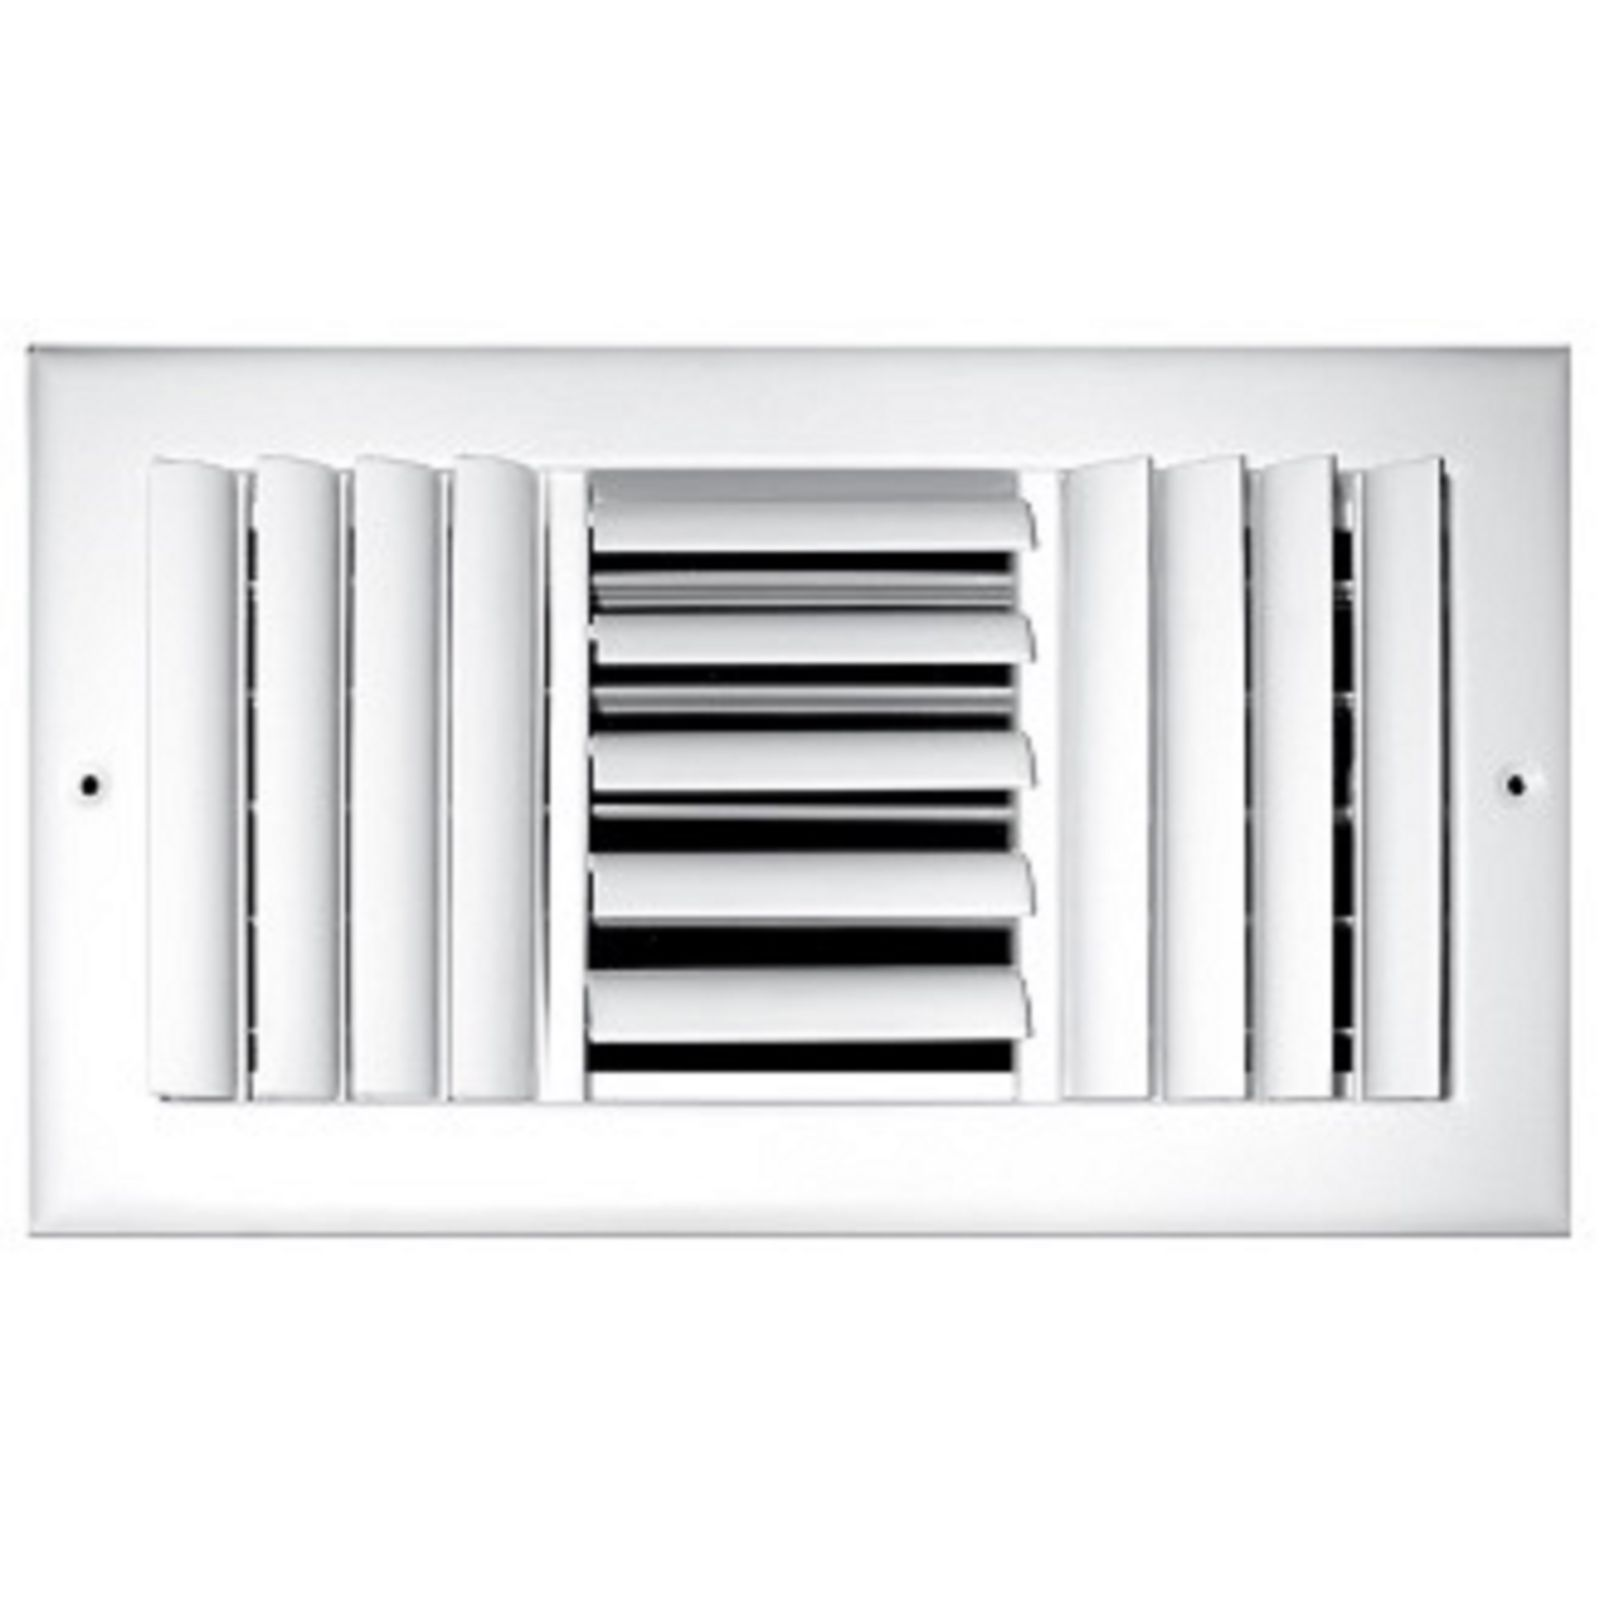 "TRUaire 303M 10X04 - Steel Adjustable Curved Blade Wall/Ceiling Register With Multi Shutter Damper, 3-Way, White, 10"" X 04"""